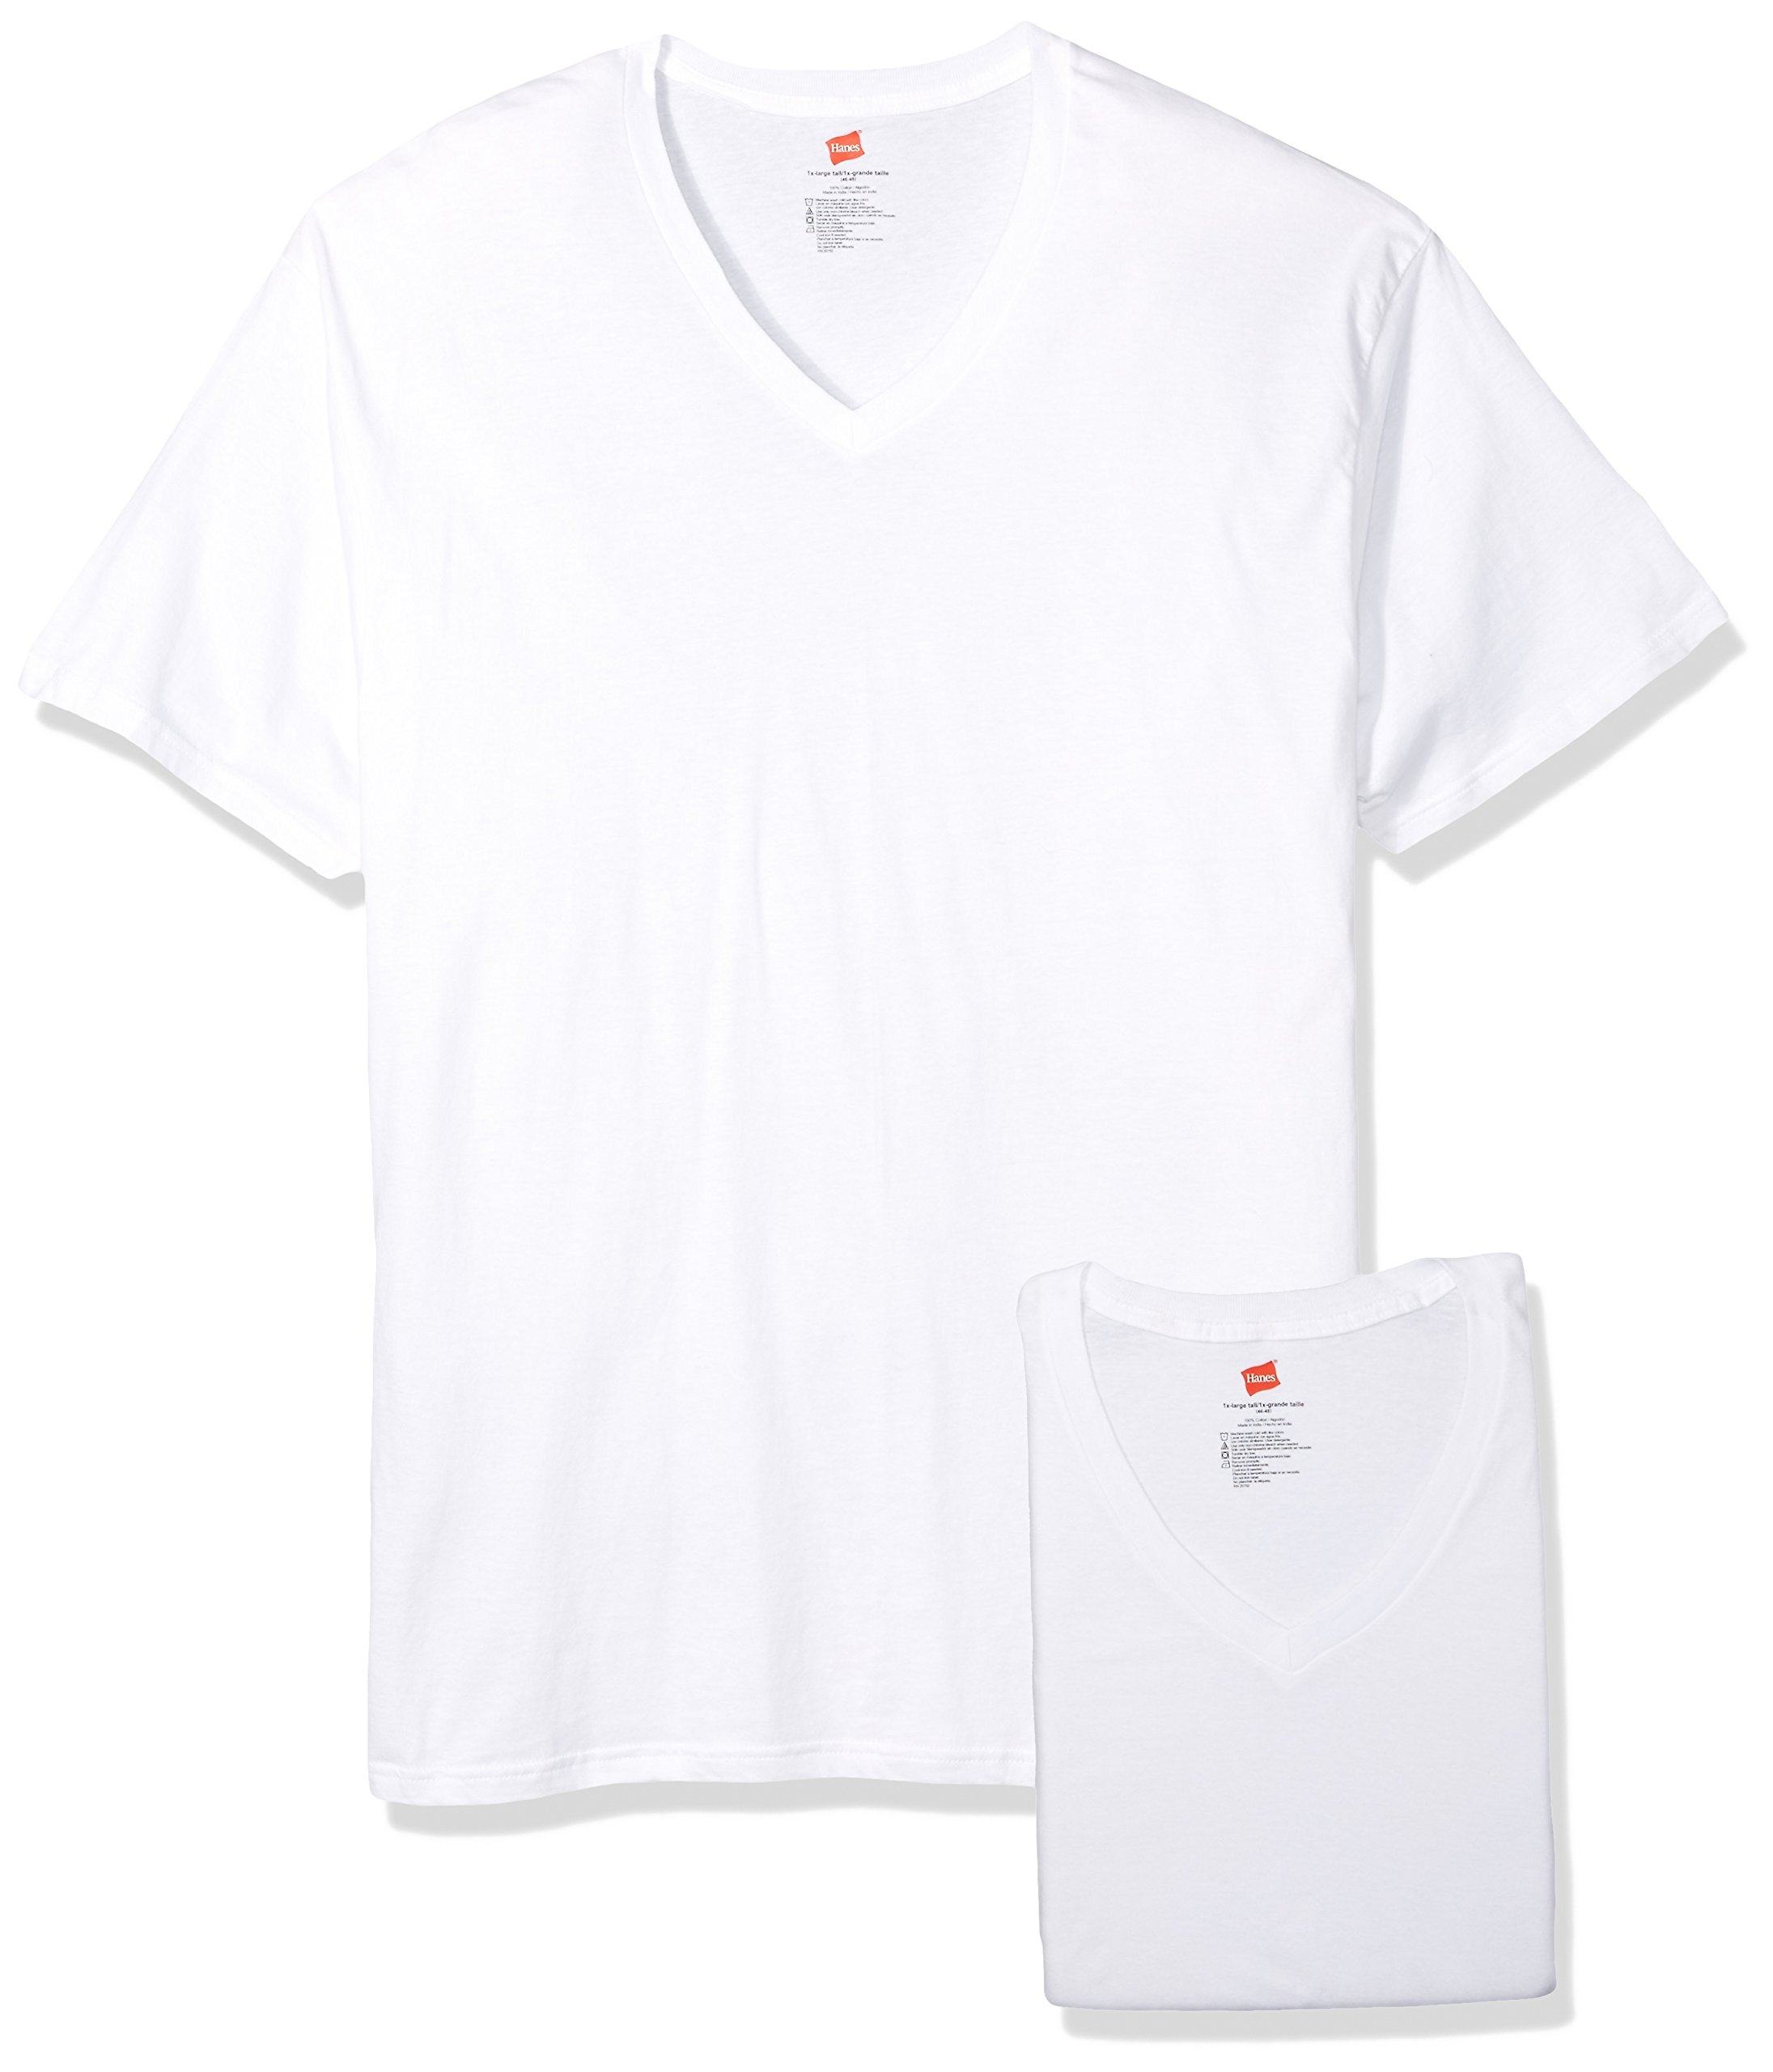 byHanes Hanes Men's Big and Tall V-Neck Undershirt 3-Pack 115hnt (White, Large Tall)